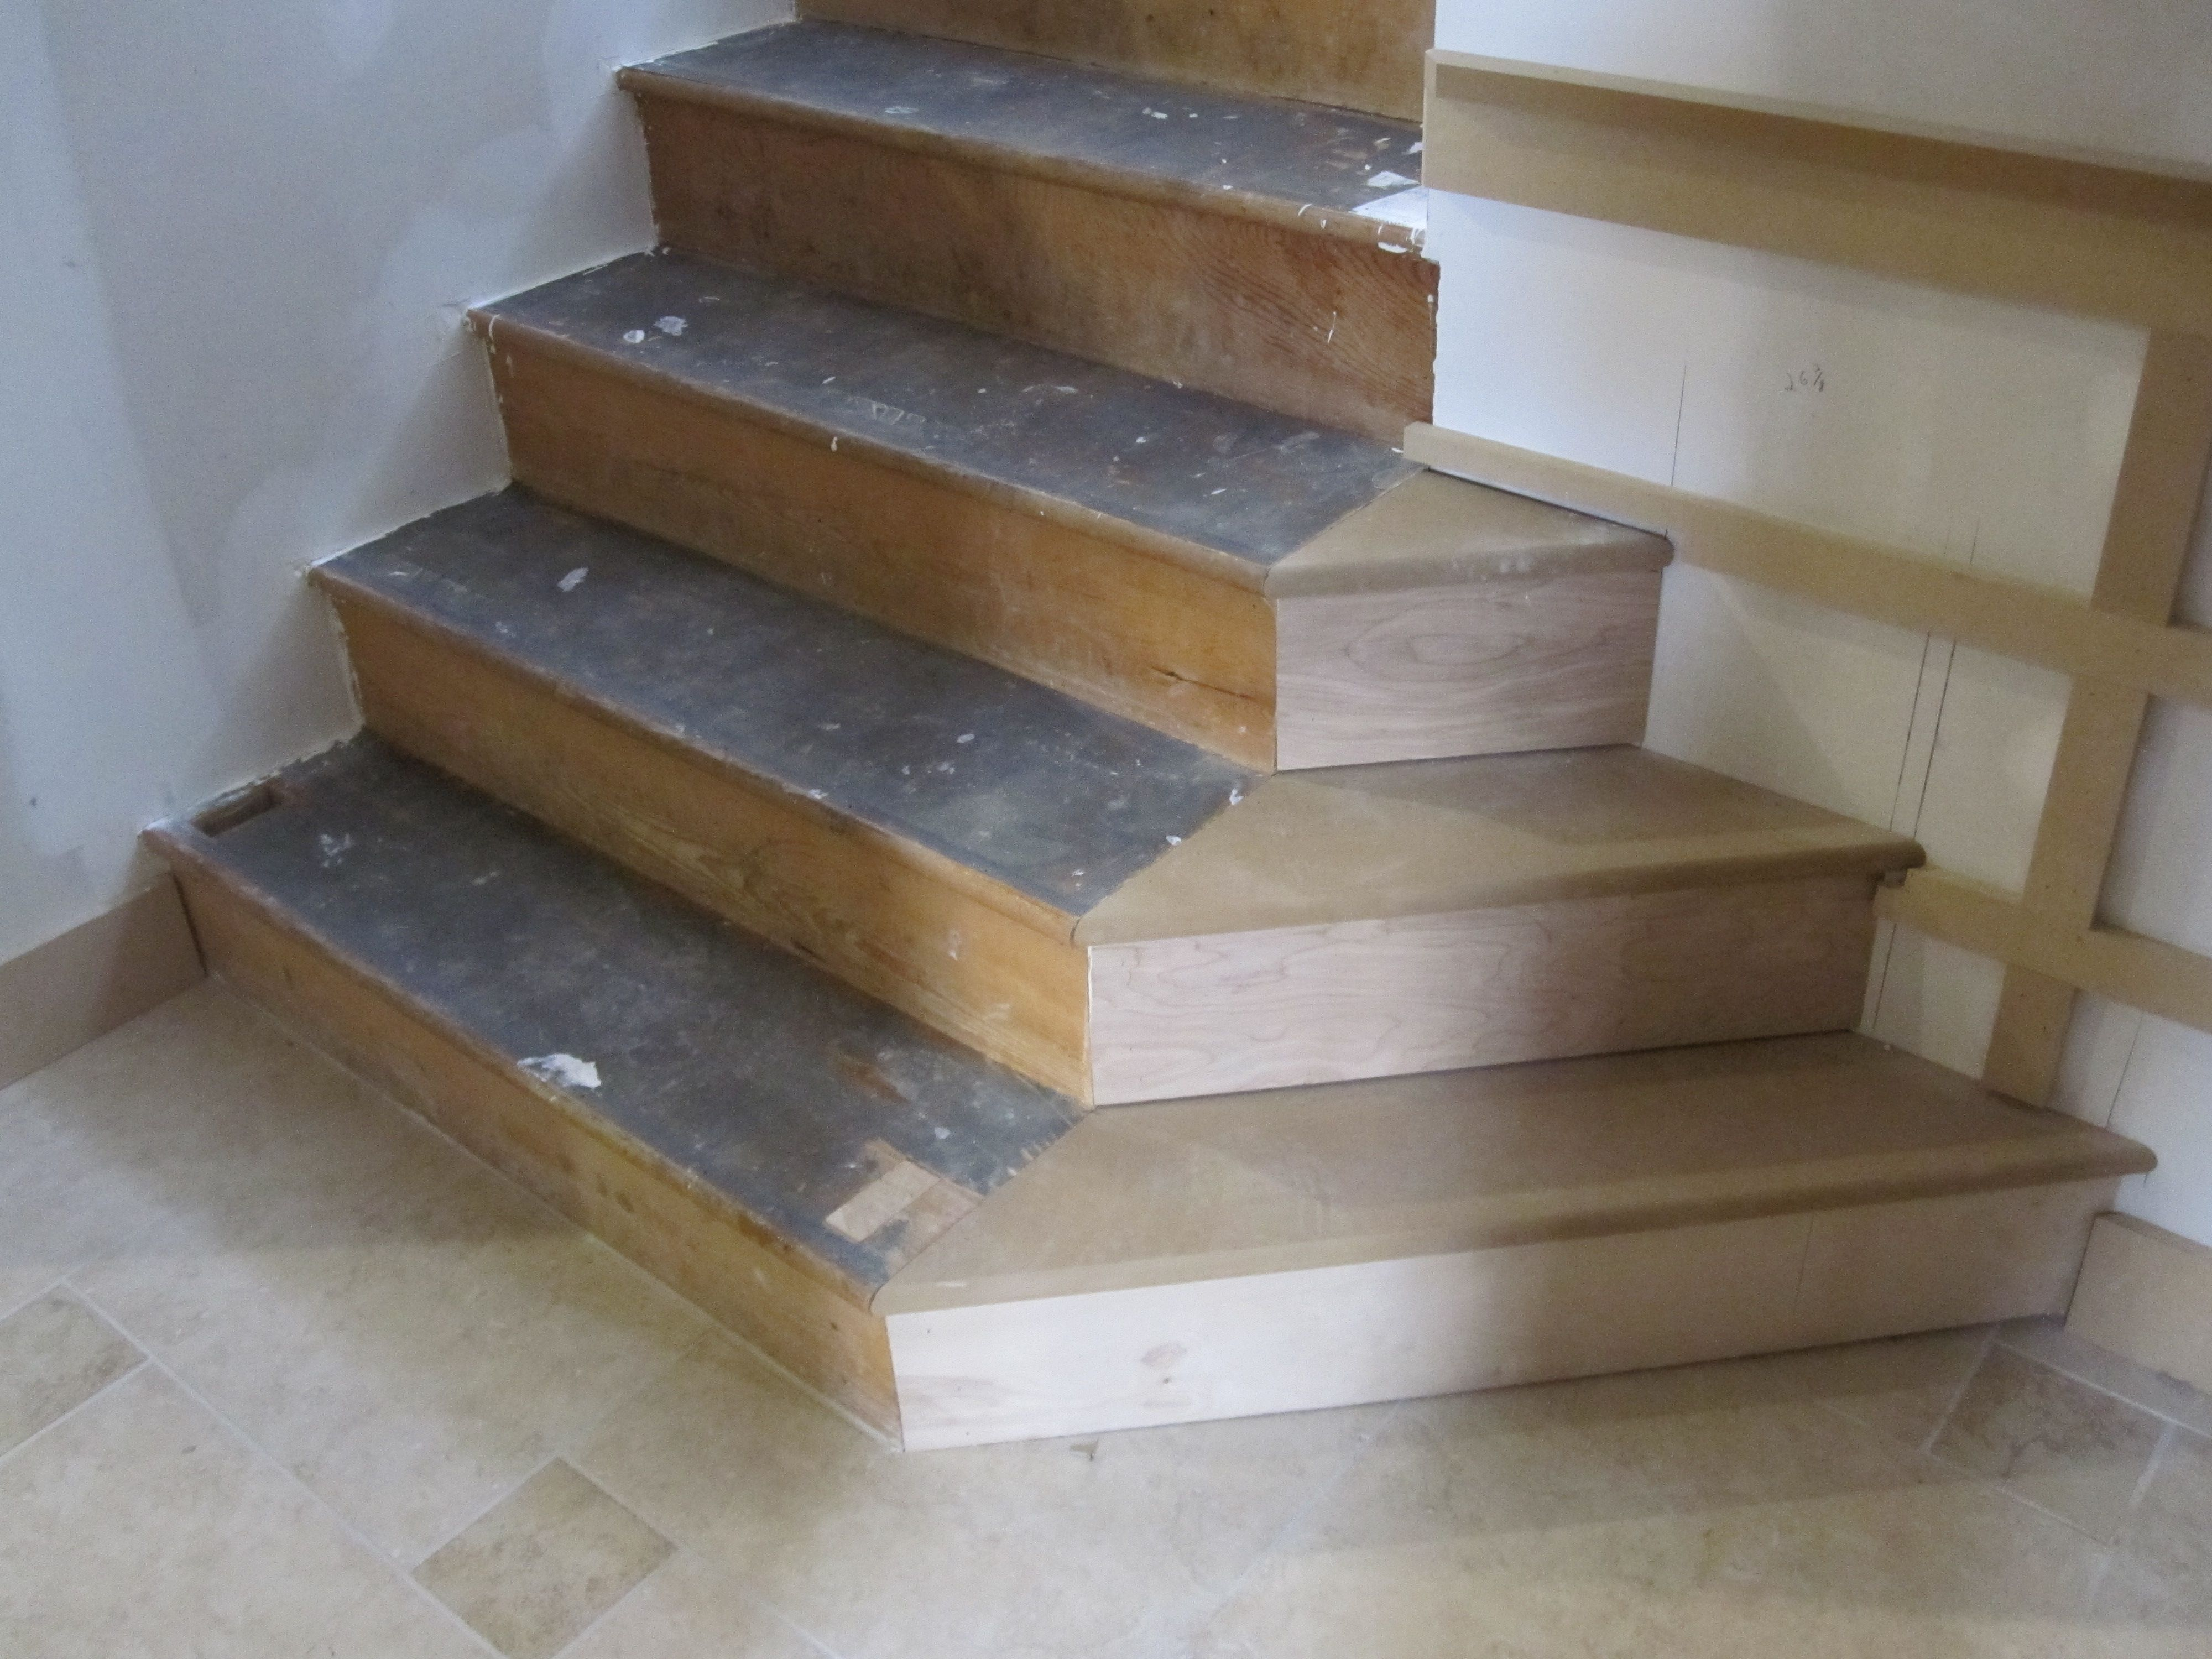 I like the idea of opening up the bottom of the stairs ...